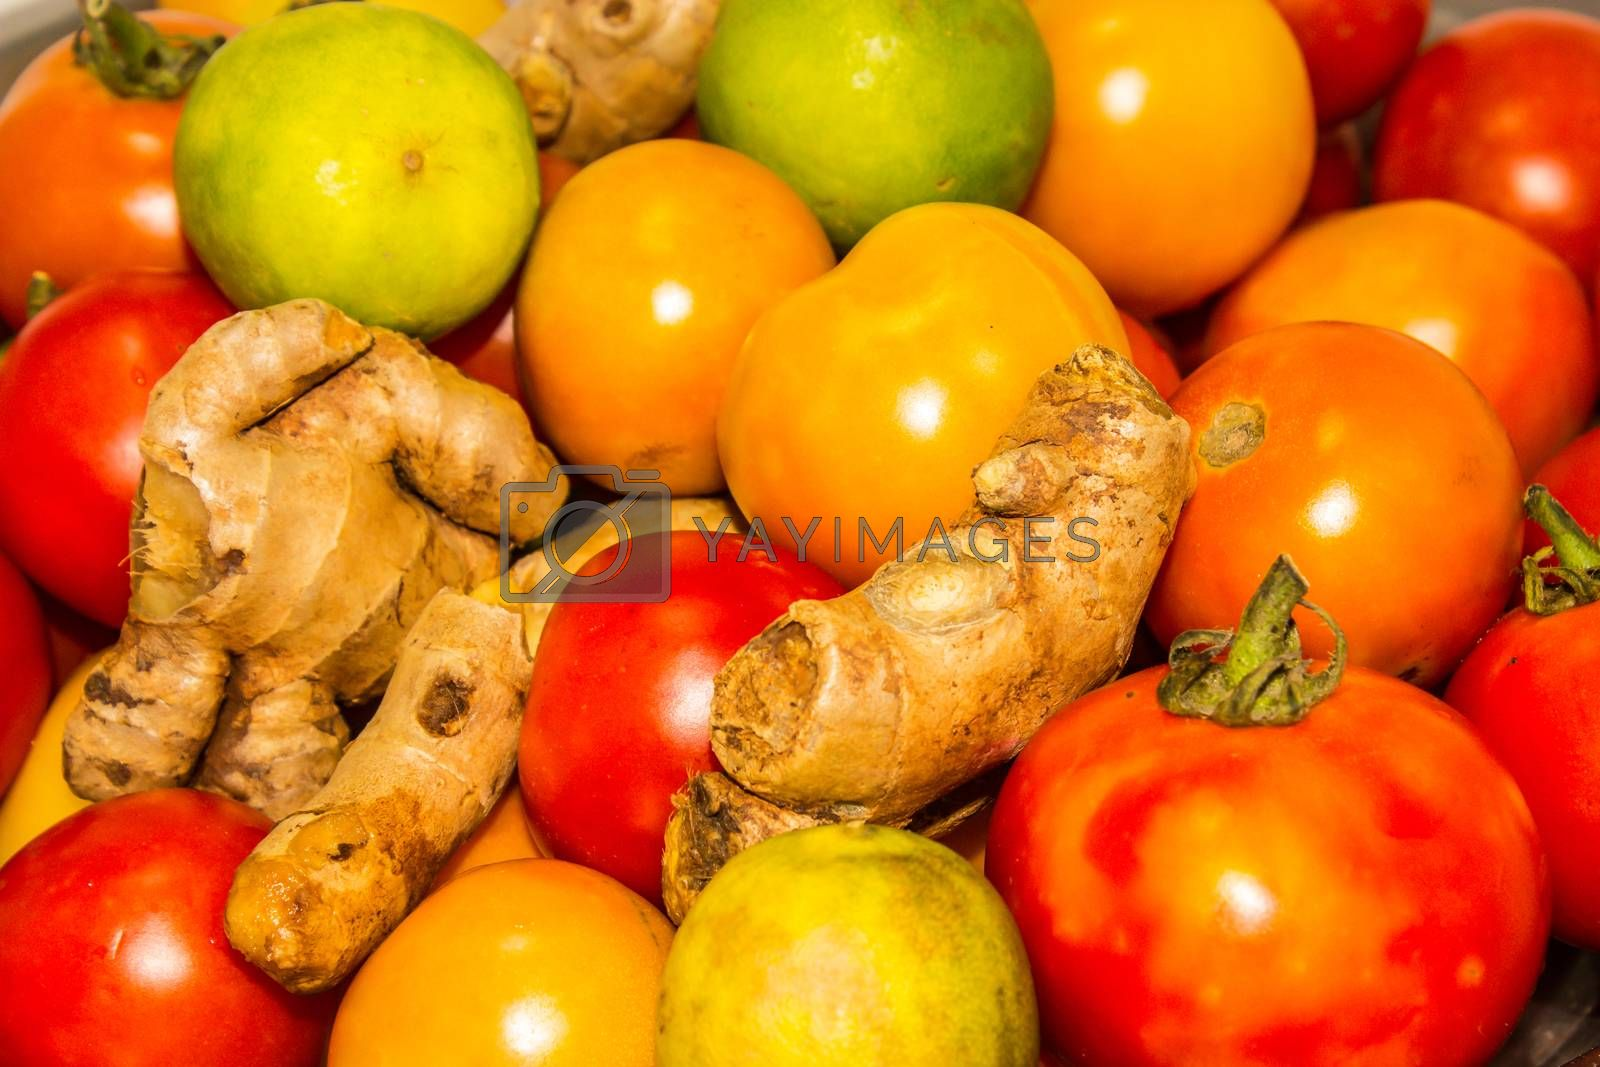 A picture of vegetables